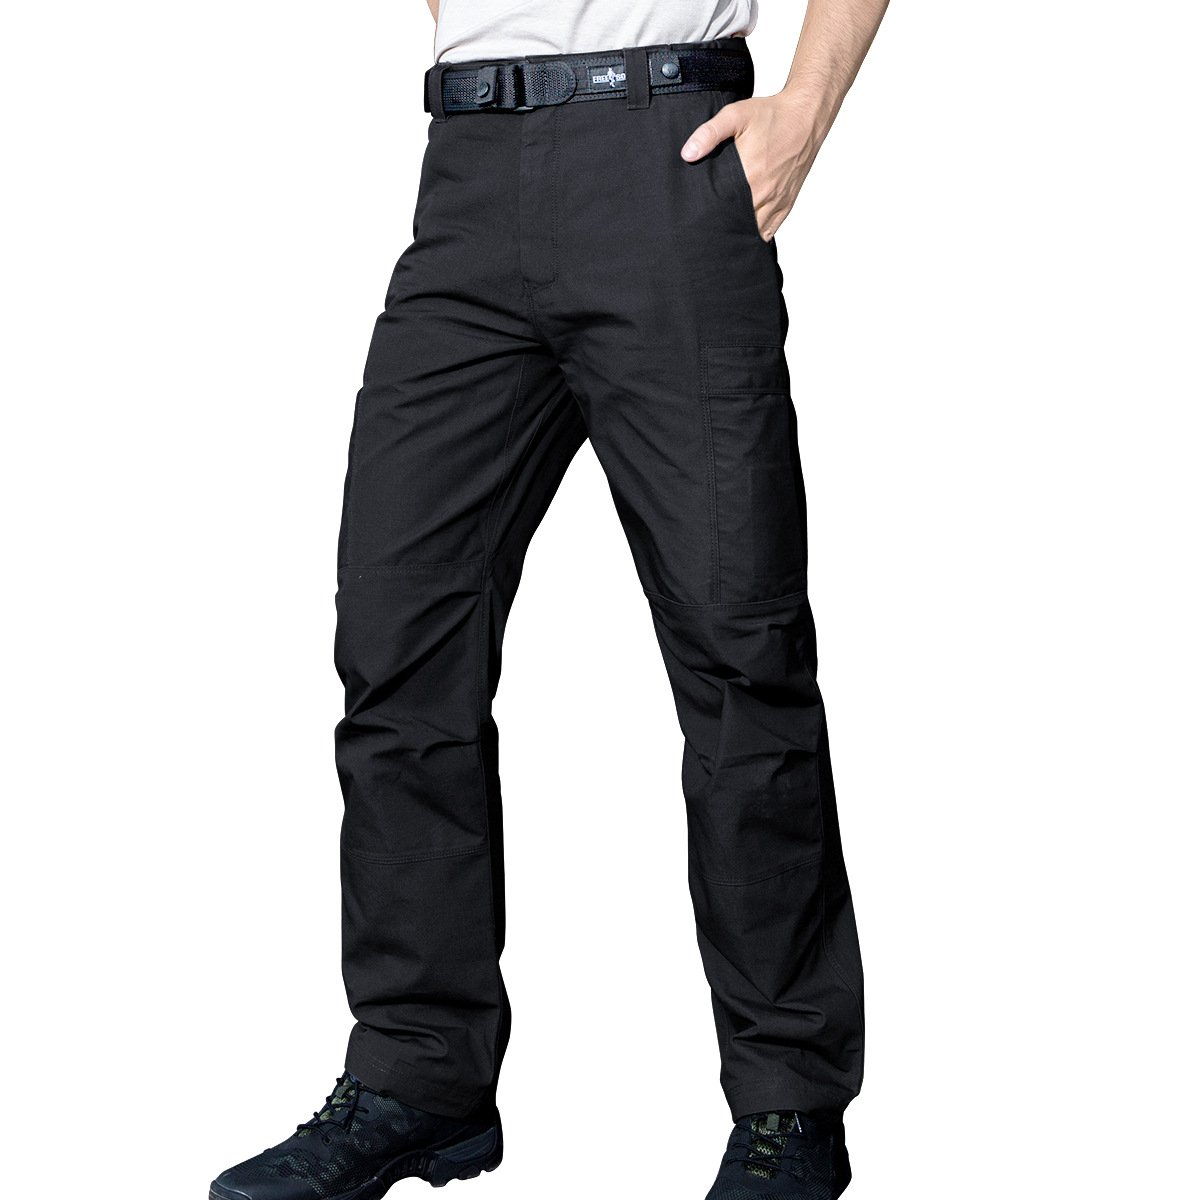 FREE SOLDIER Tactical Pants Mens Cargo Trousers Camping Explorer Water Resistance Pants(Black 38W/31.5L)